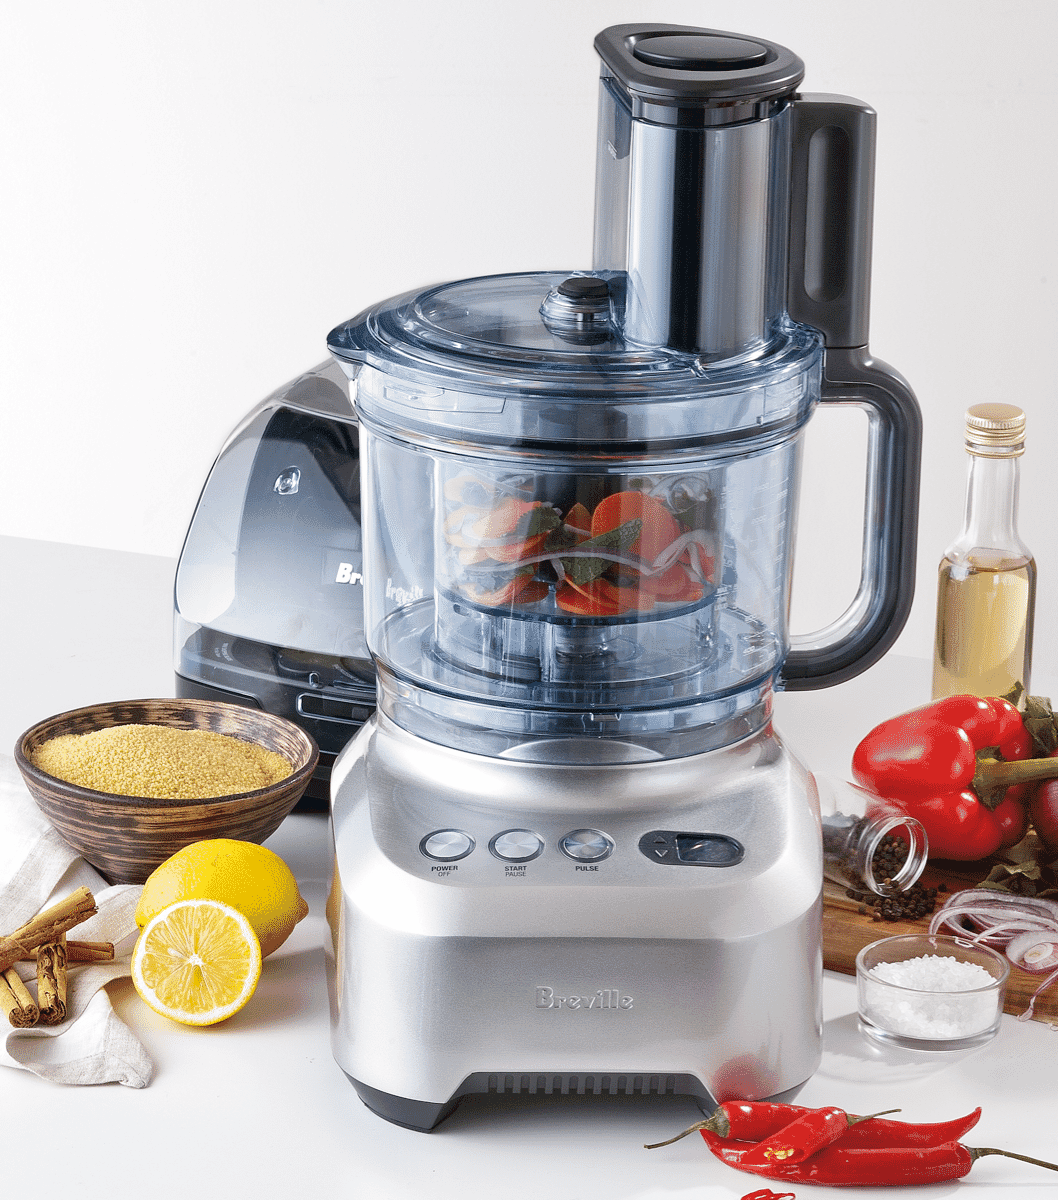 Kitchen Wizz Pro 2000W Food Processor